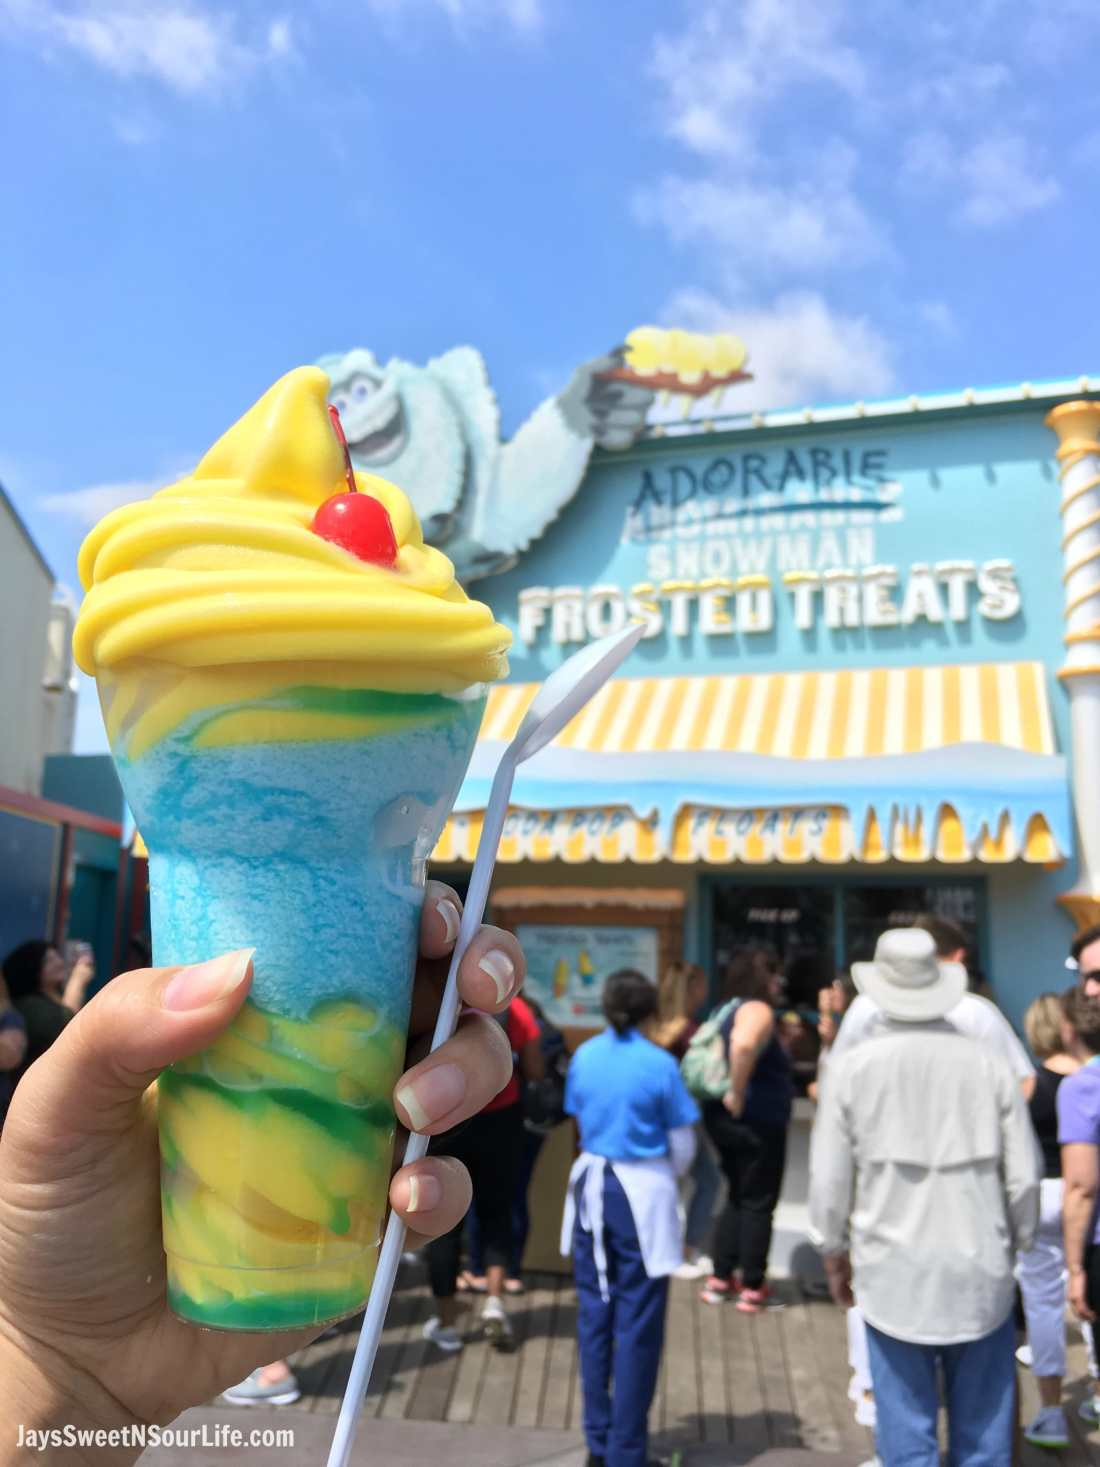 Pixar Pier Frosty Parfait at the Adorable Snowman Sweet Treats. Pixar Fest at Disneyland runs from April 13 through September 3rd.